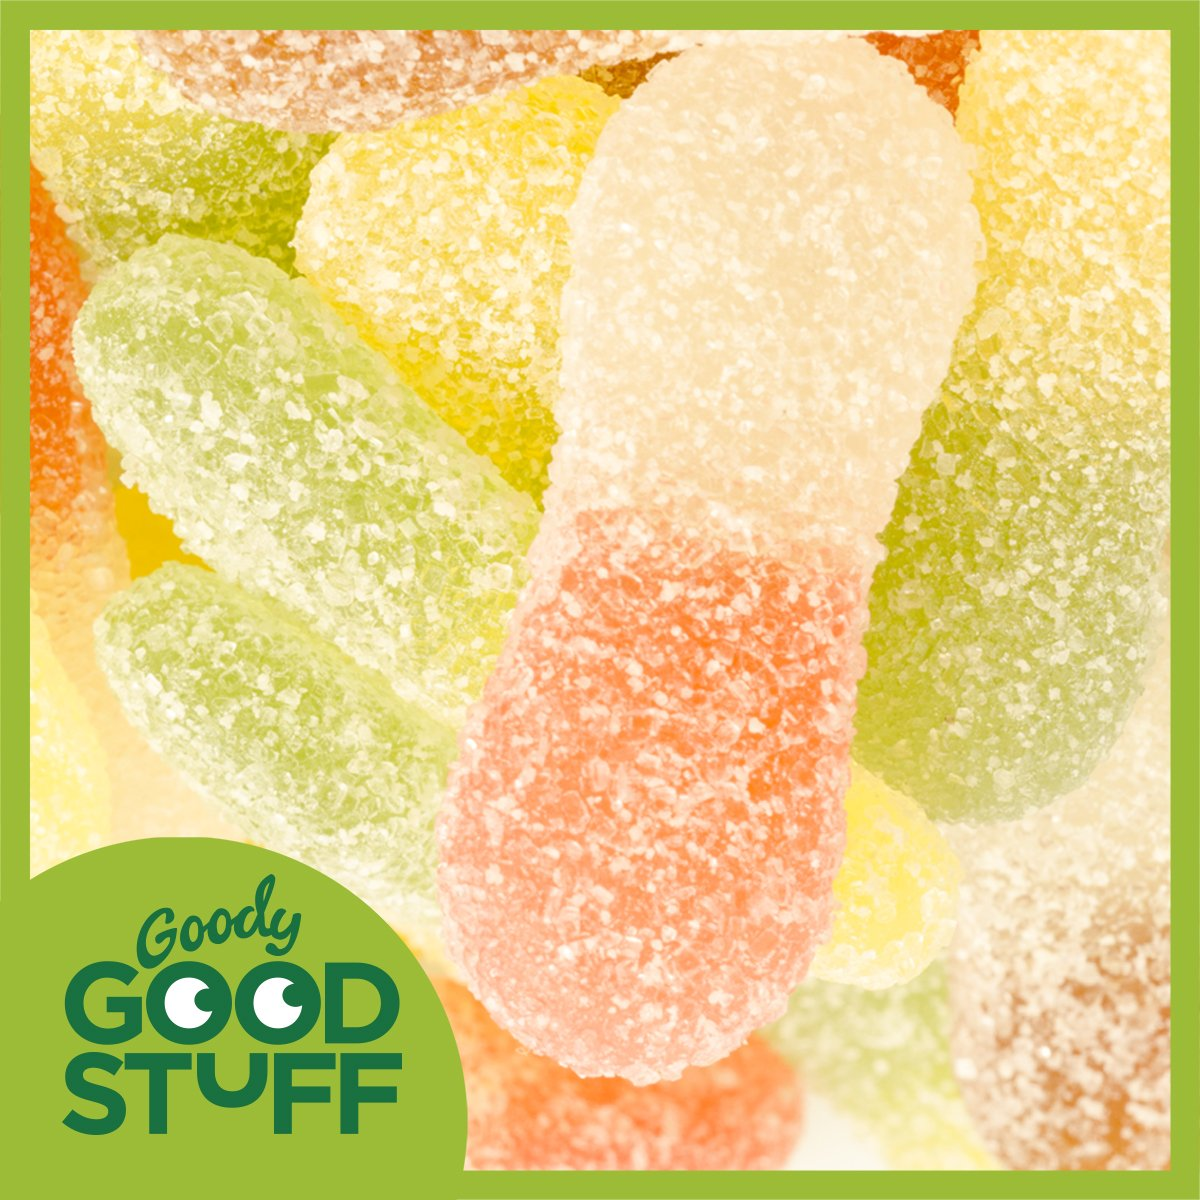 Is sour mix match your fave flavour? RT & Follow for your chance to win! #vegan #competition #win #sweets https://t.co/sGxxEvWPWp